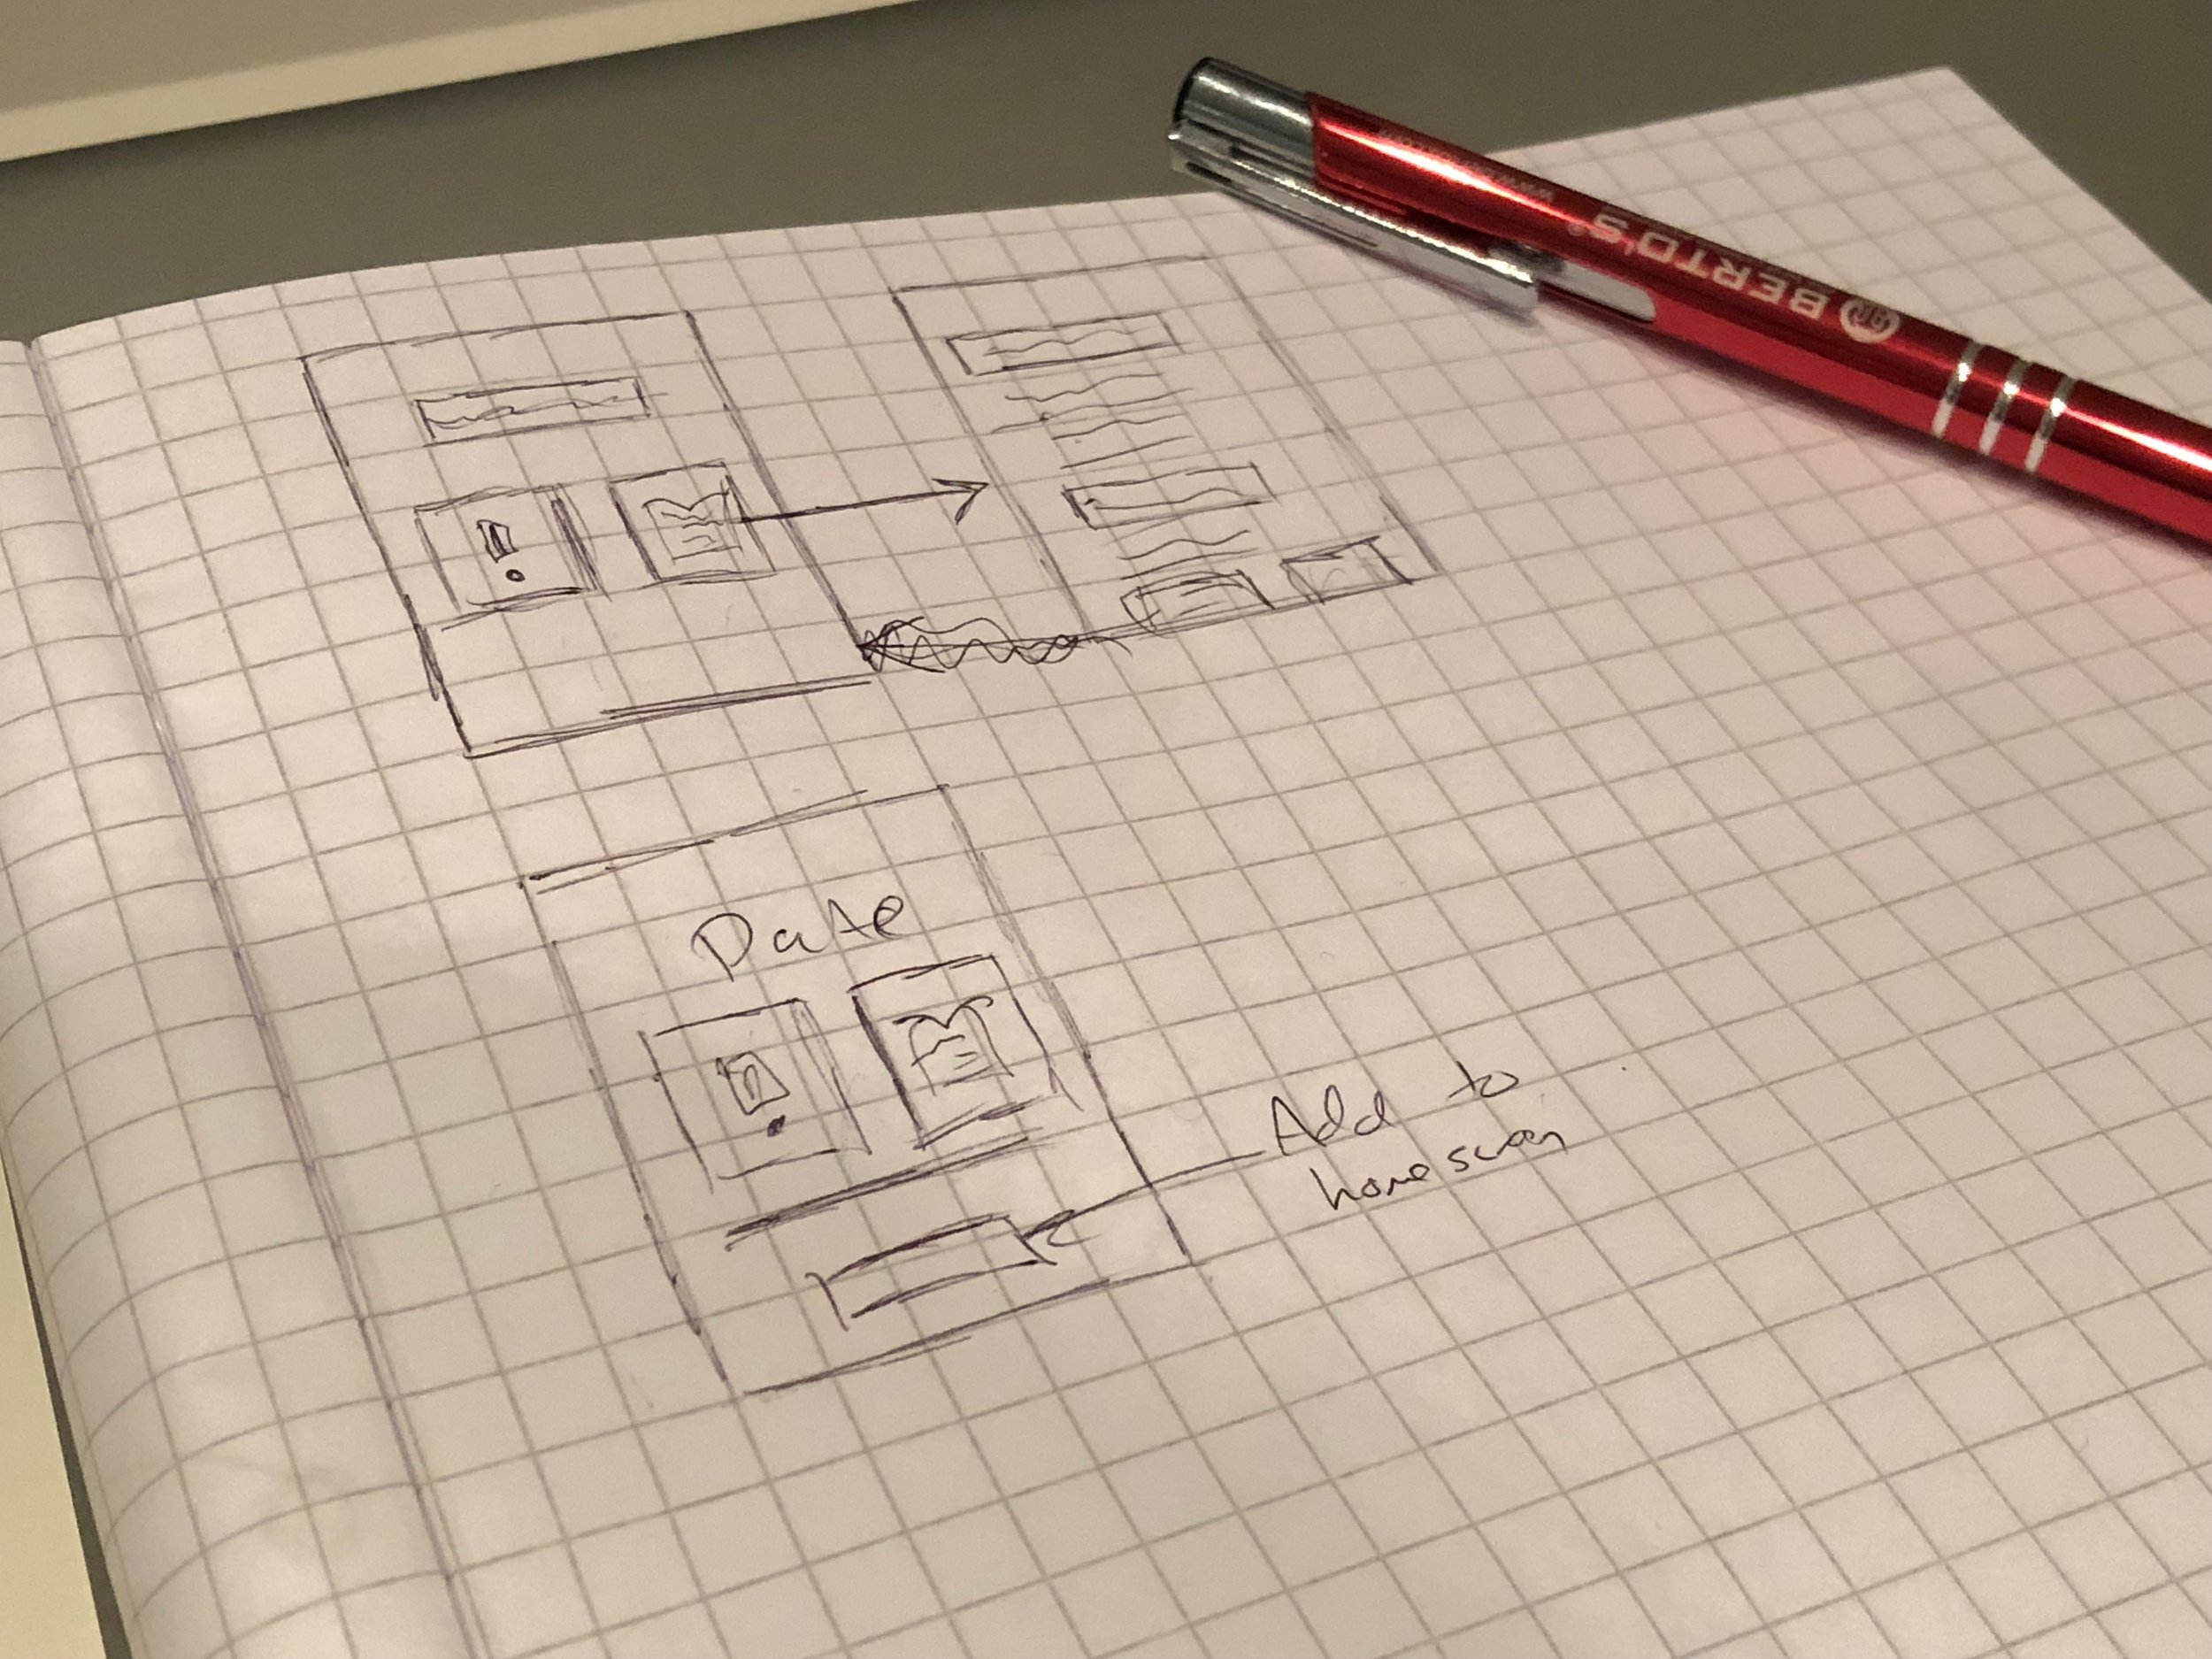 Initial sketches of the interface.